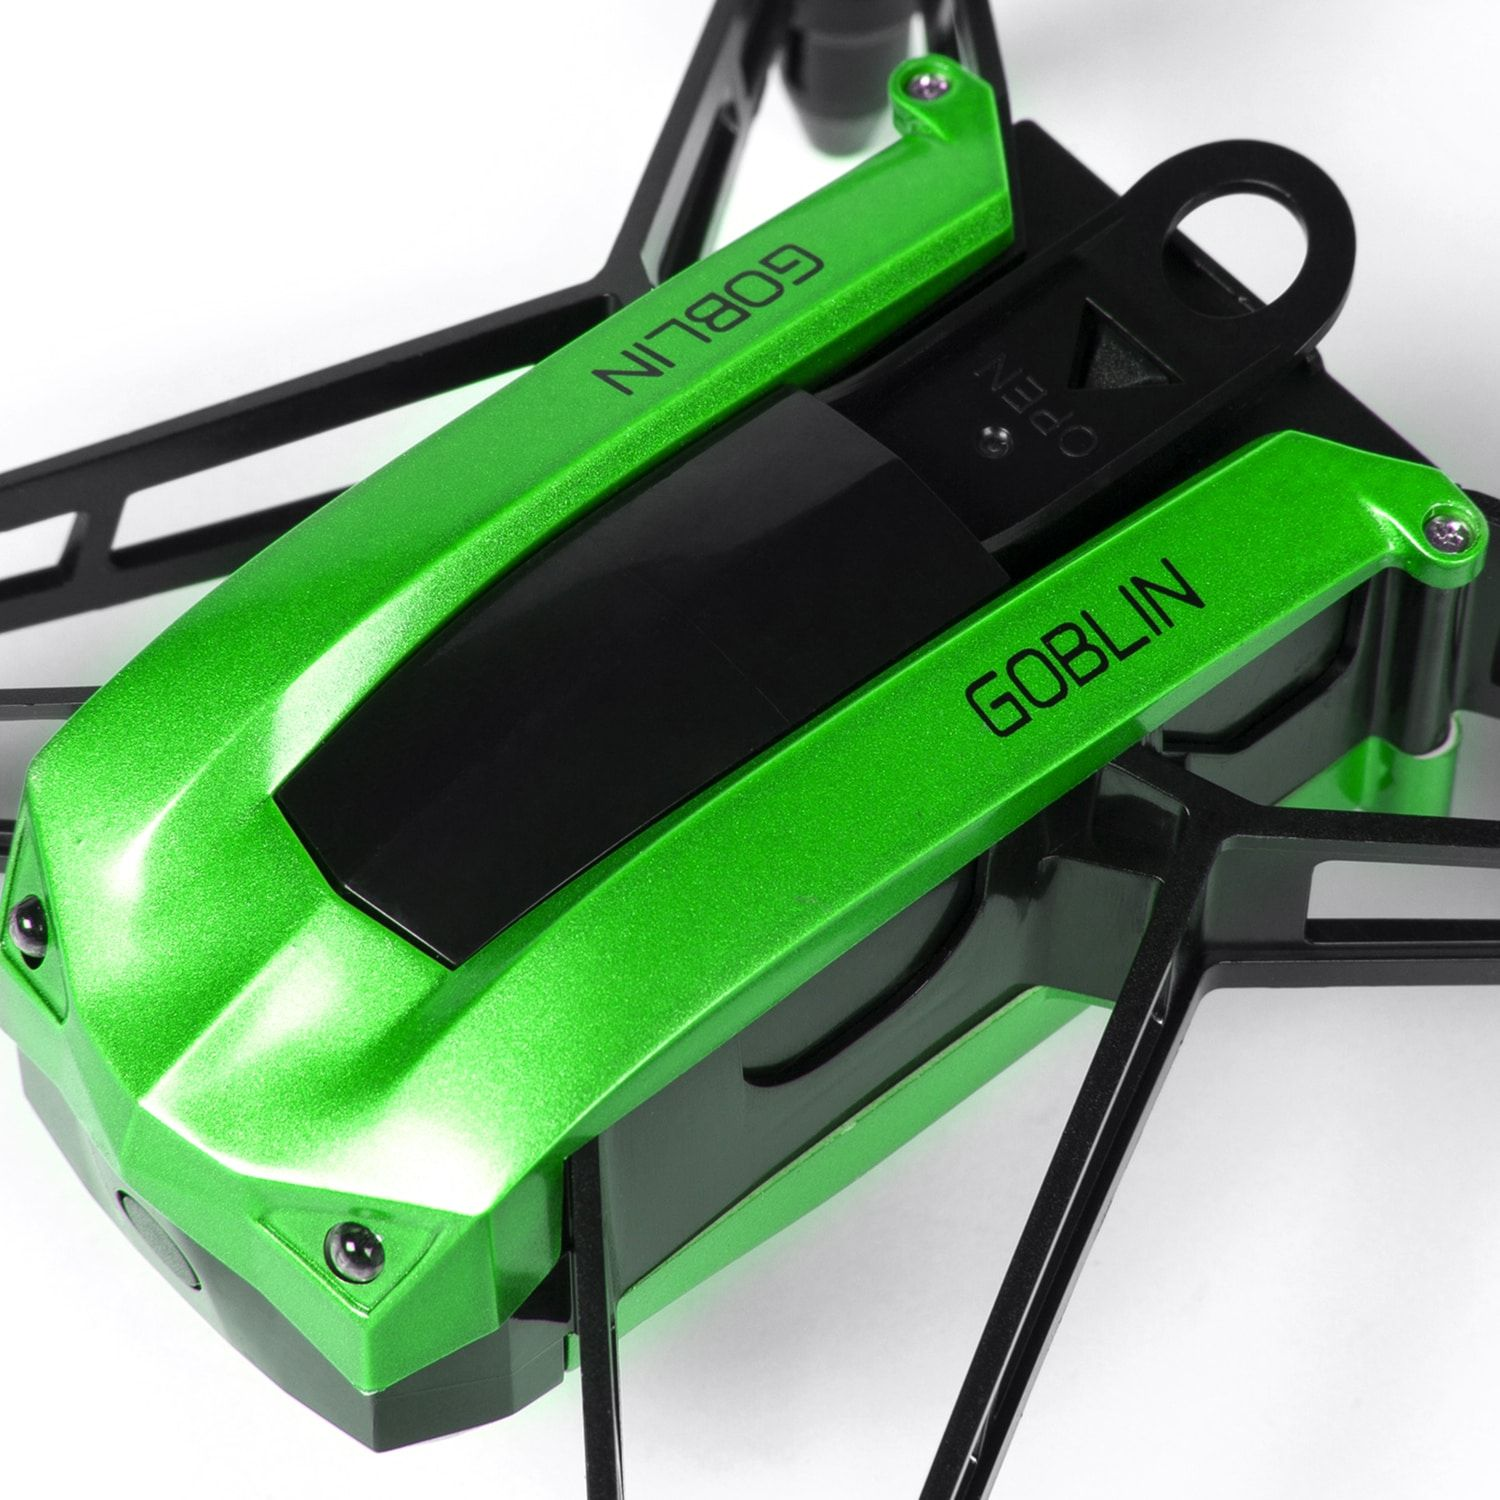 World Tech Toys Elite Goblin 2.4GHz 4.5CH 25 MPH RC Racing Quadcopter Drone (Green) #techtoys